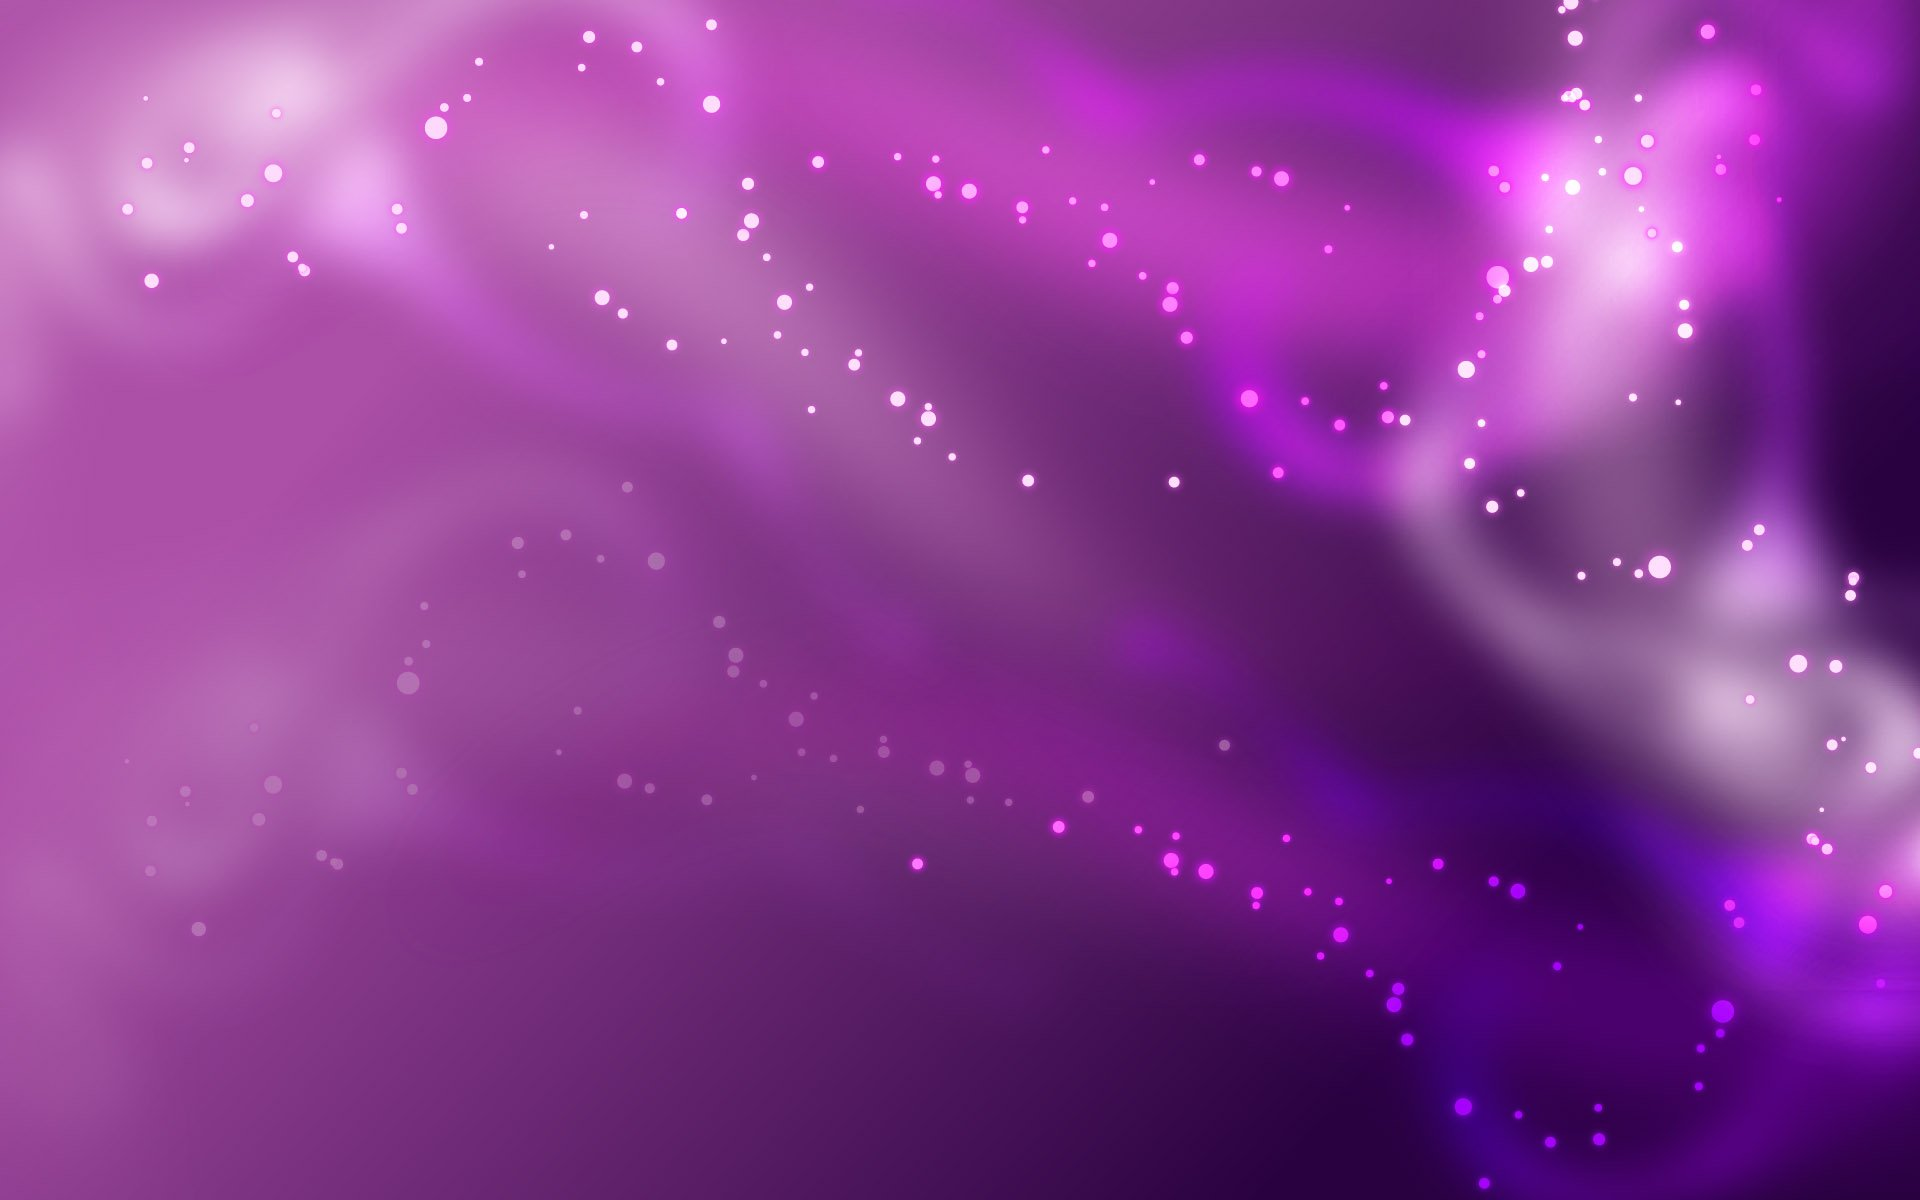 Purple Colorful Wallpapers HD Wallpapers 1920x1200